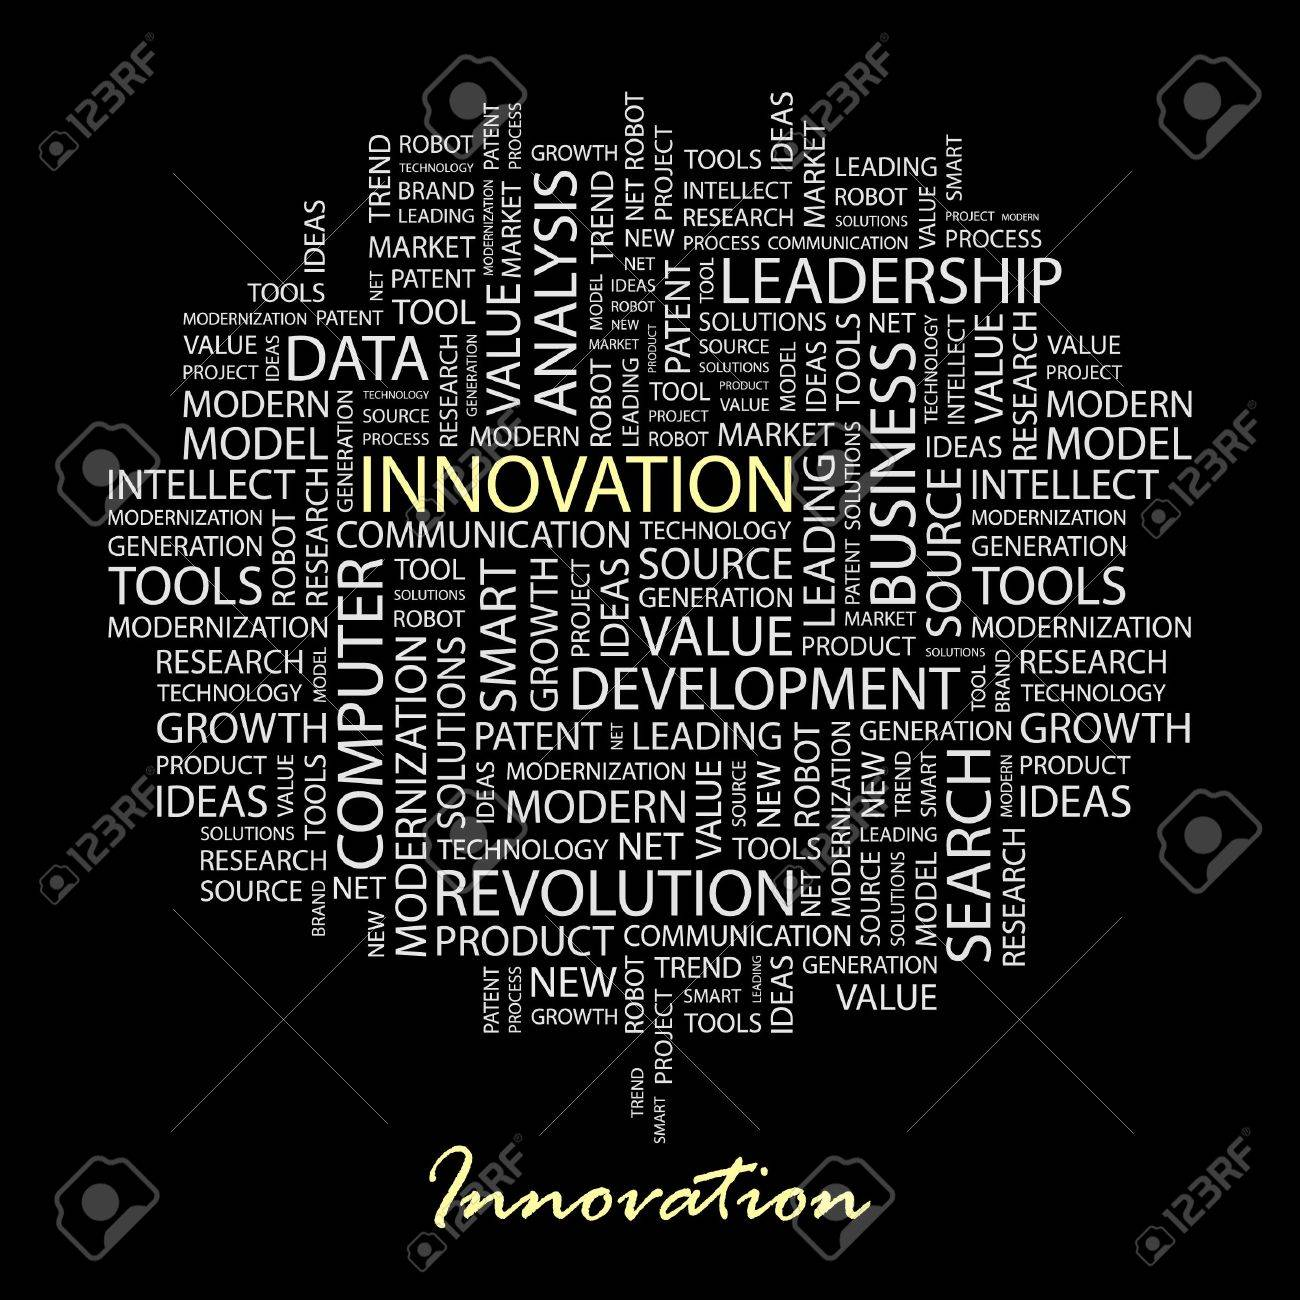 INNOVATION. Word collage on black background. Stock Vector - 6879994